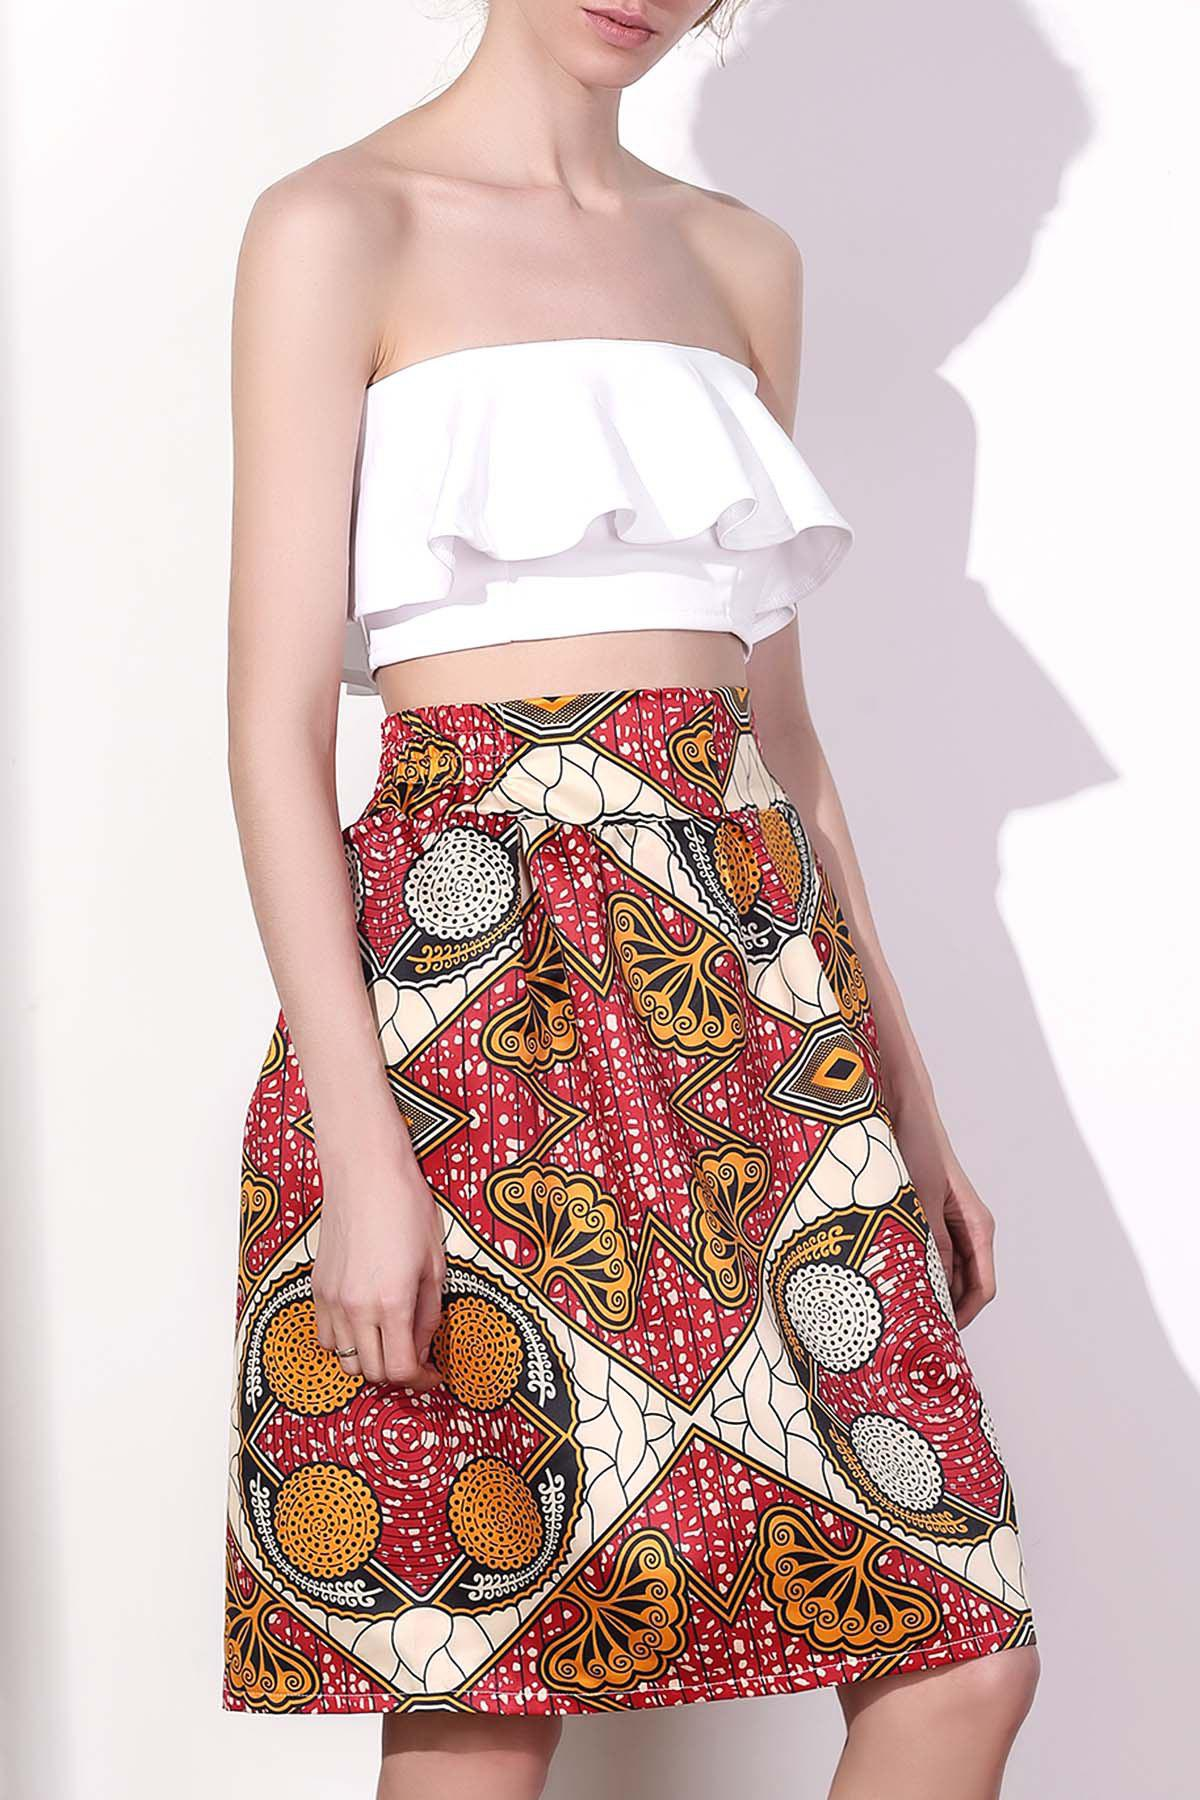 Women's Chic High Waist Color Block Geometrical Print A-Line Skirt - COLORMIX S